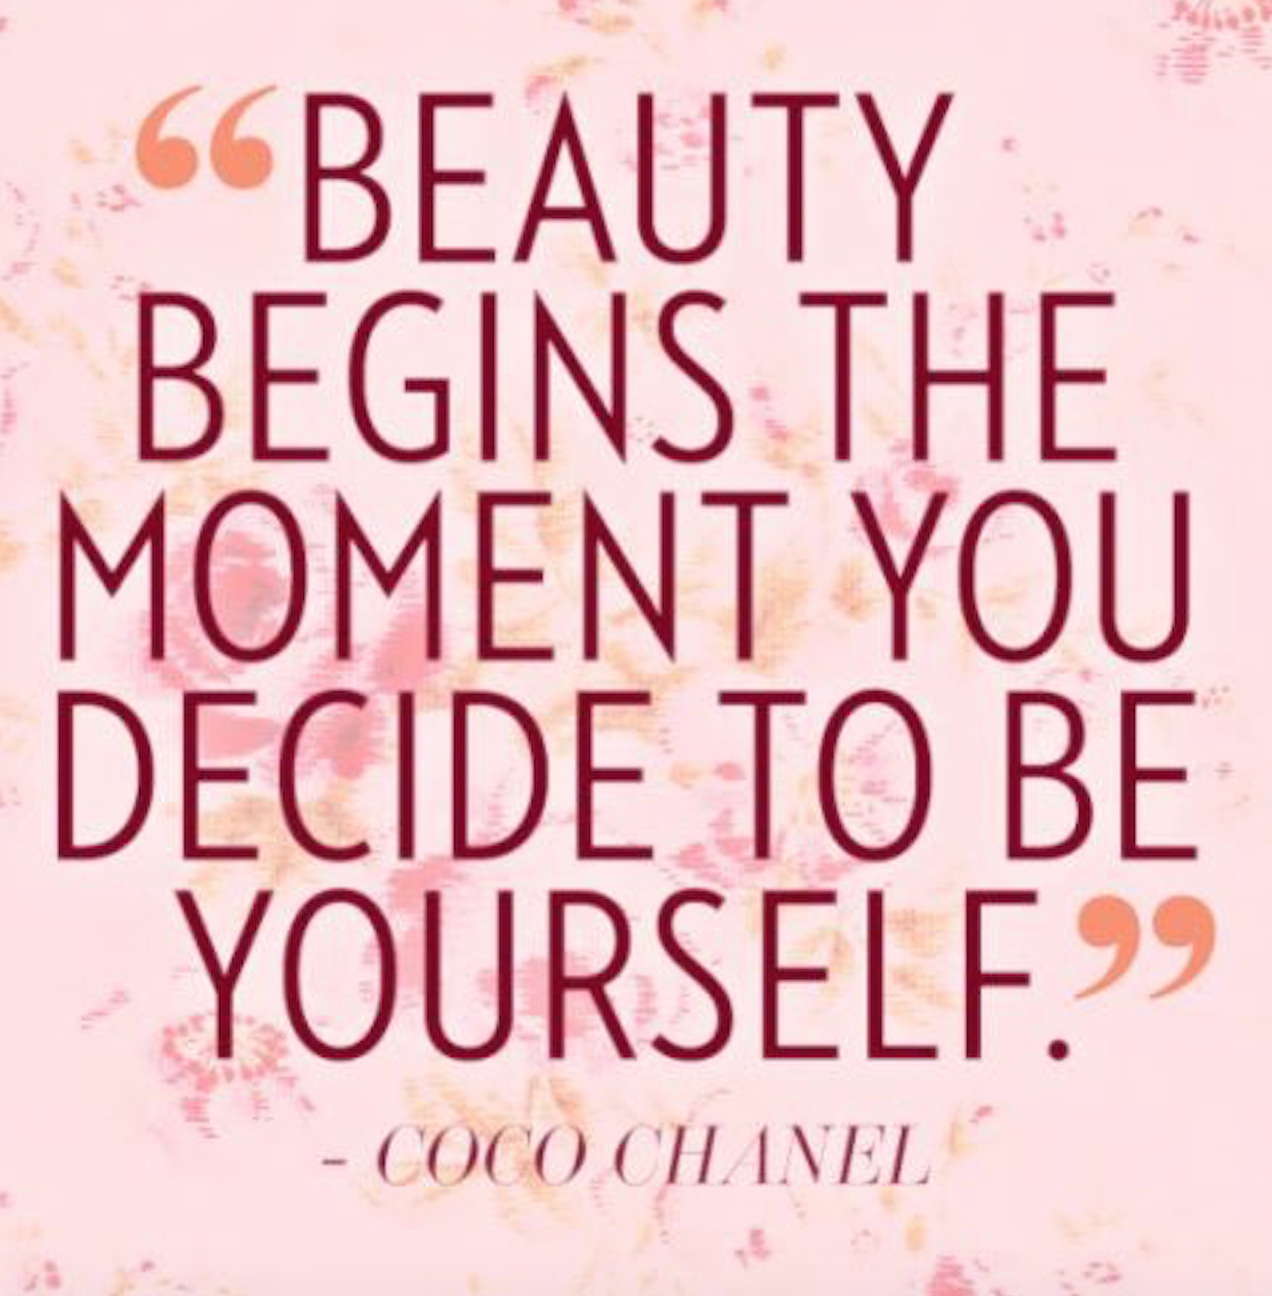 motivational quotes for women - beauty begins the moment you decide to be yourself - coco chanel quotes